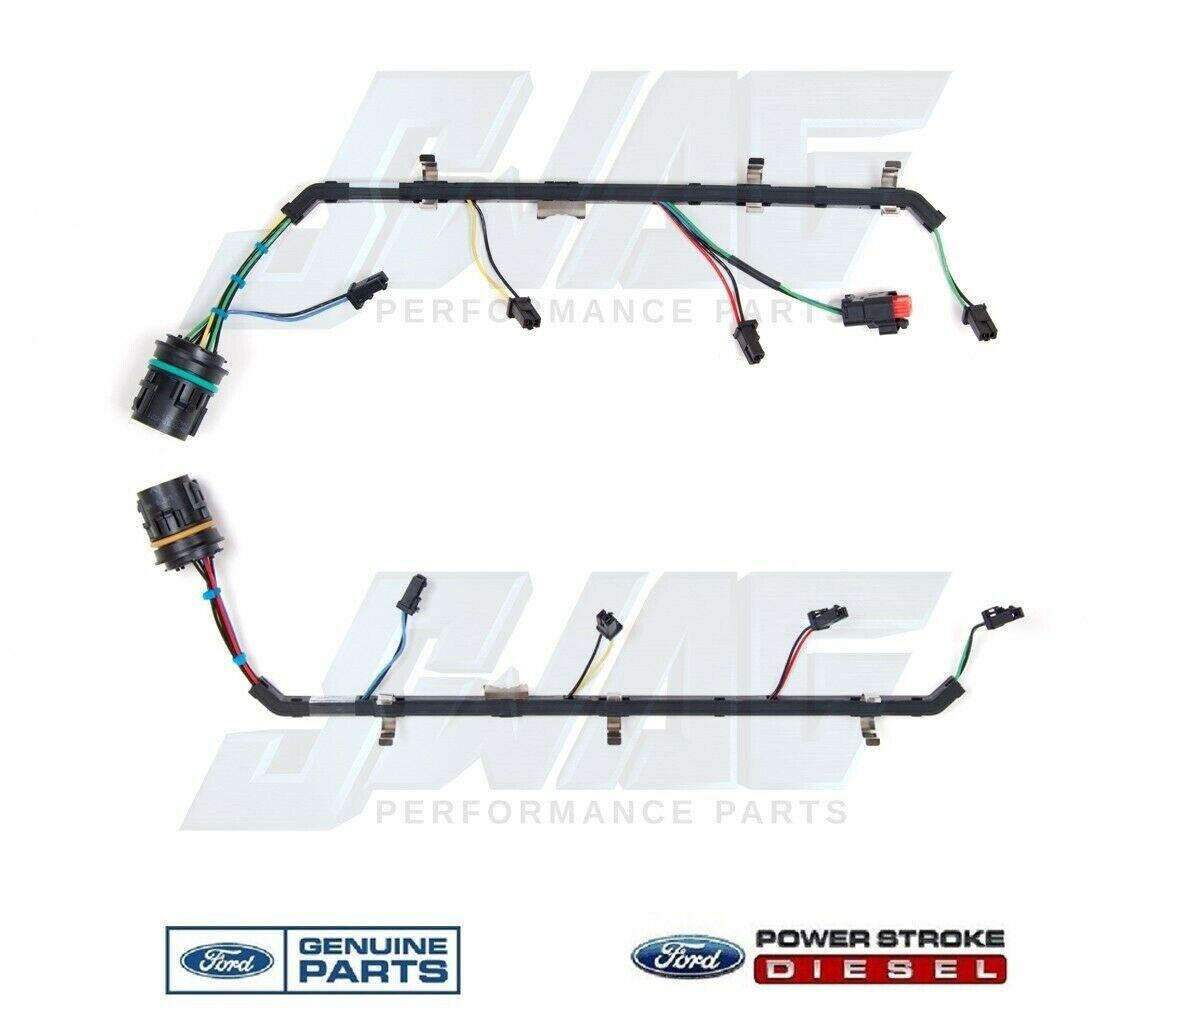 Injectors 1993 Mustang 5 0 Wiring Diagrams Electrical Engine Diagram Ford Fuel Injection Harness Wire Data Schema U2022